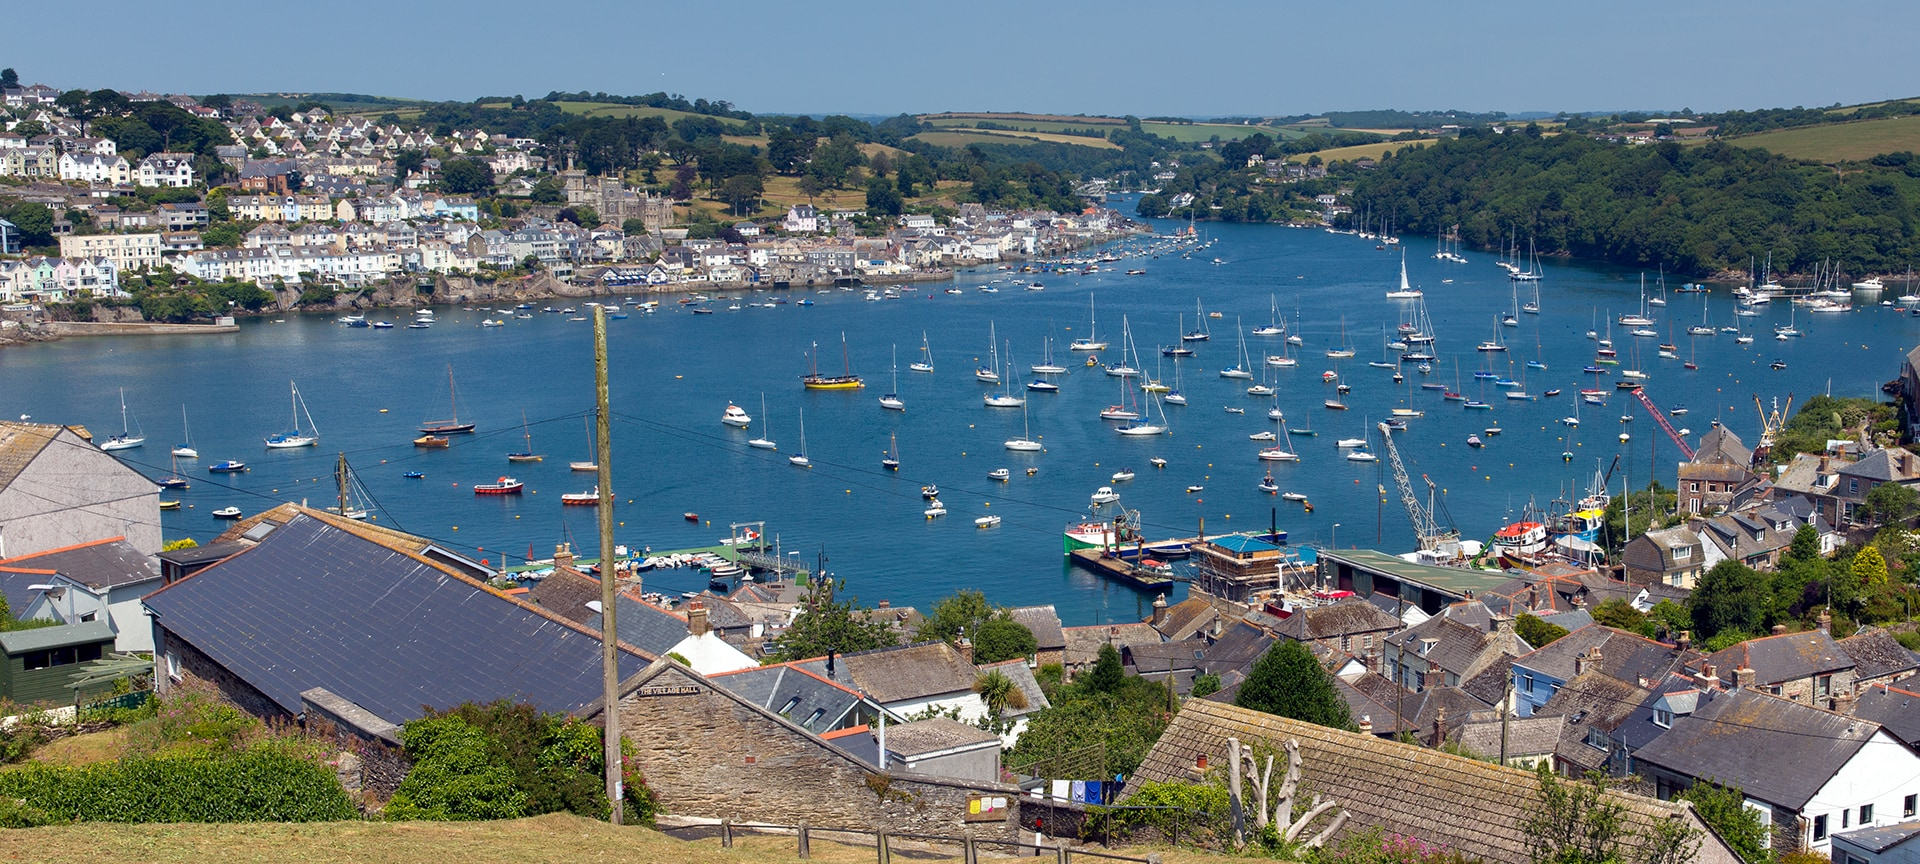 The ancient coastal town of Fowey has a natural harbour on the River Fowey which can be crossed using the Bodinnick car ferry or the smaller Polruan foot ferry. Boats of all shapes and sizes clutter the harbour including fishing boats, motor boats, yachts, kayaks and tour boats.